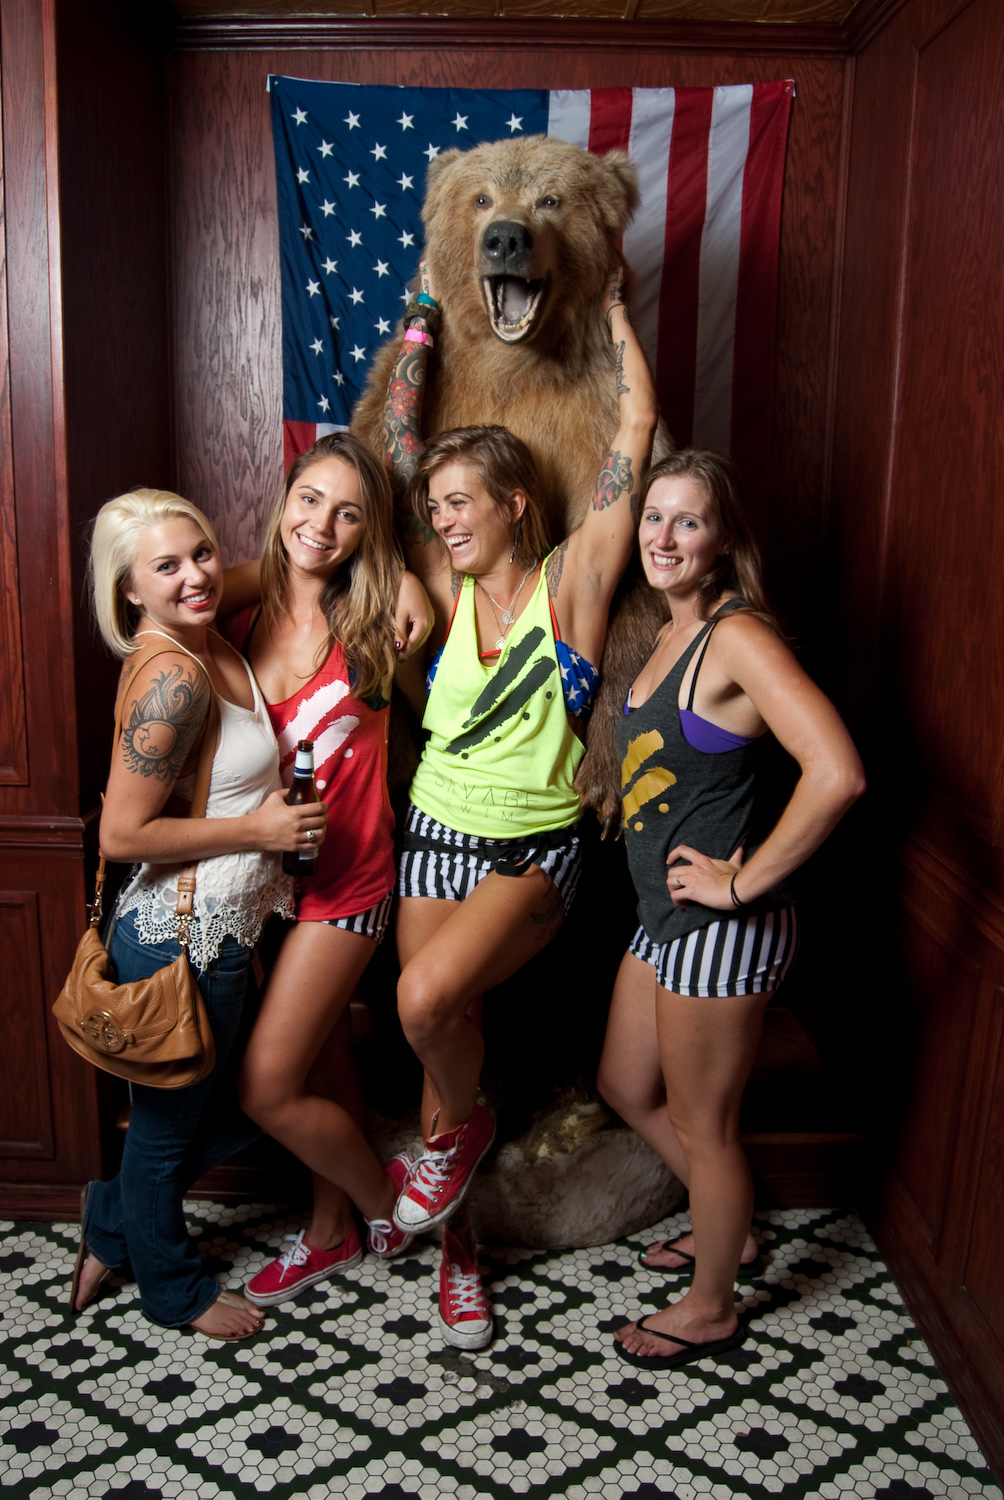 PHOTOS: Red, White & Blue at Dos Gatos in downtown St. Augustine